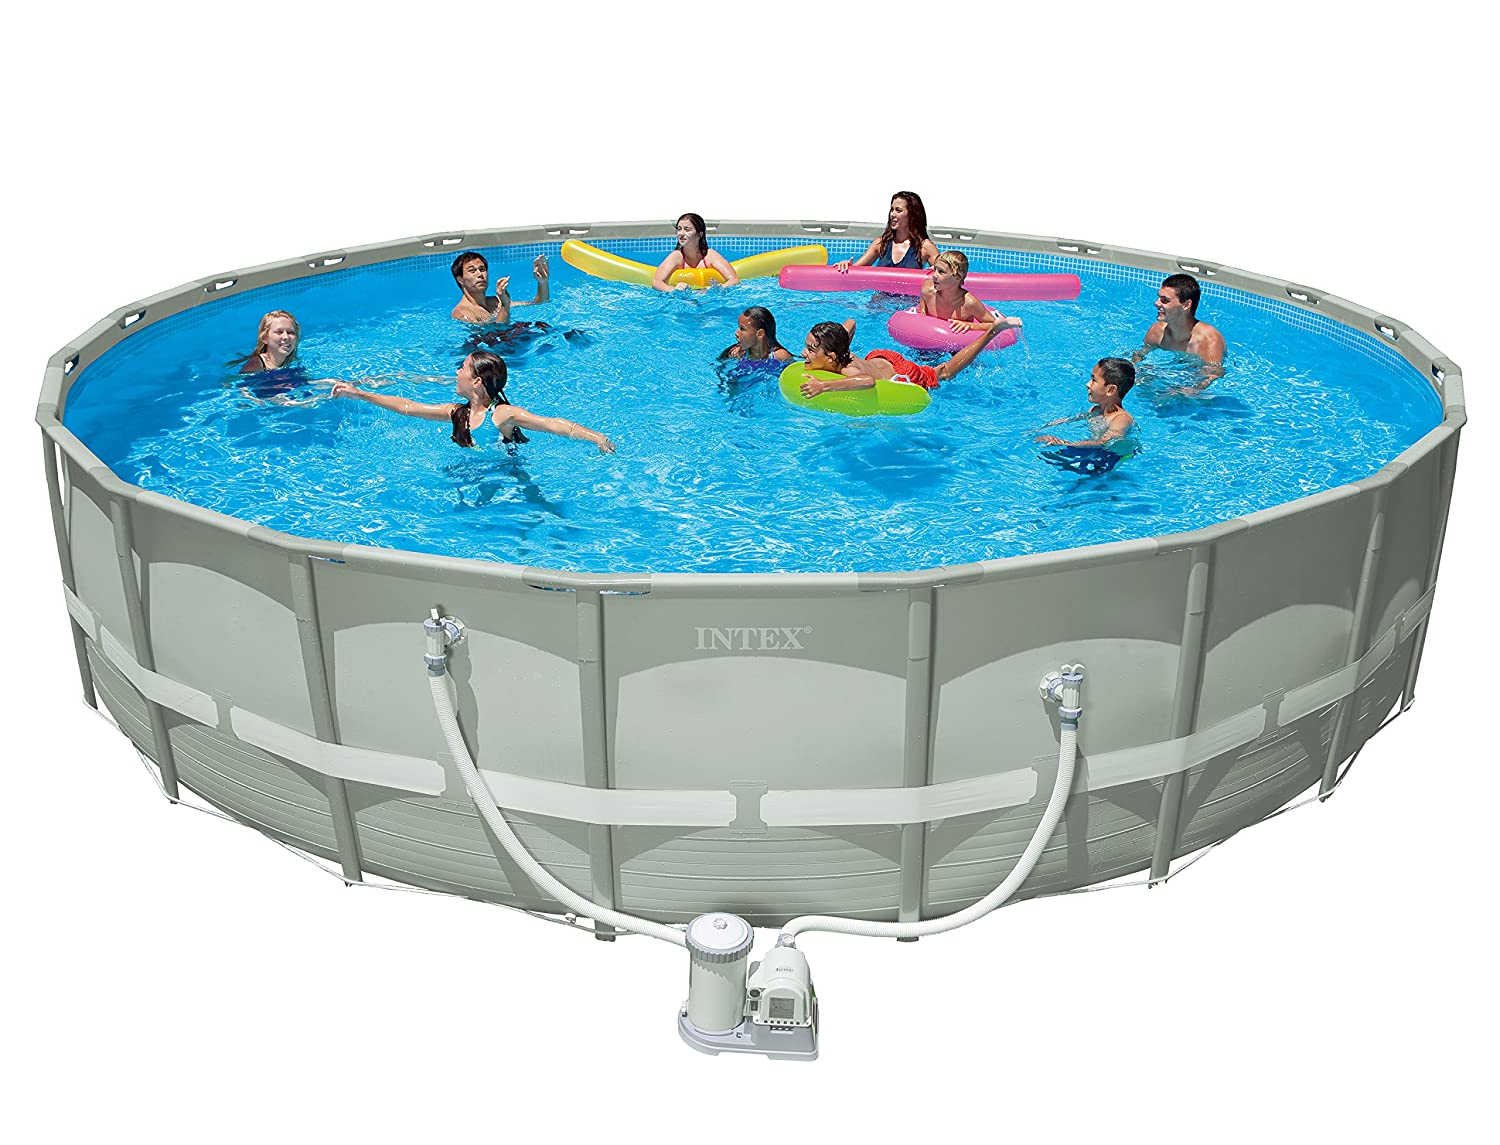 amazoncom intex 22 x 52 ultra frame pool set garden outdoor - Intex Pools